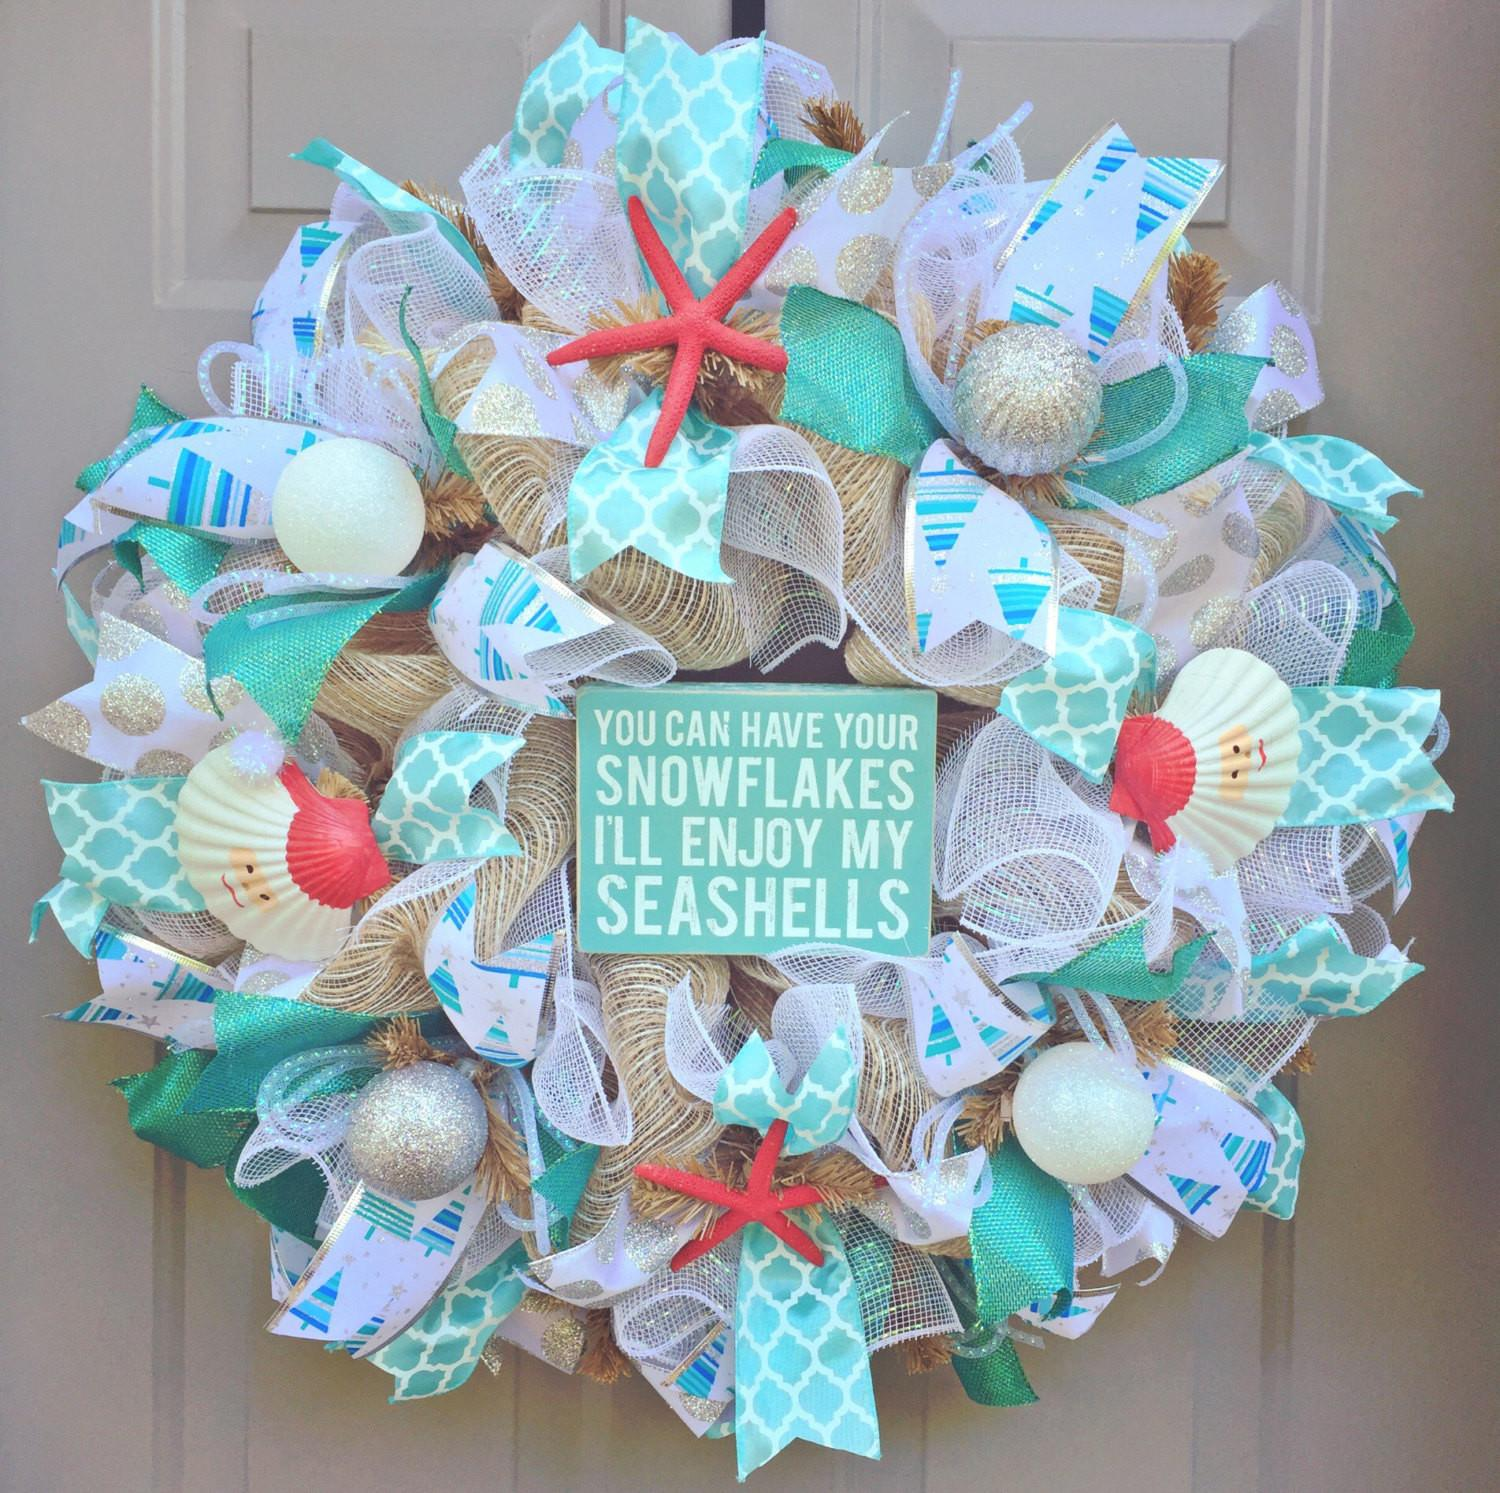 Can Have Your Snowflakes Enjoy Seashells